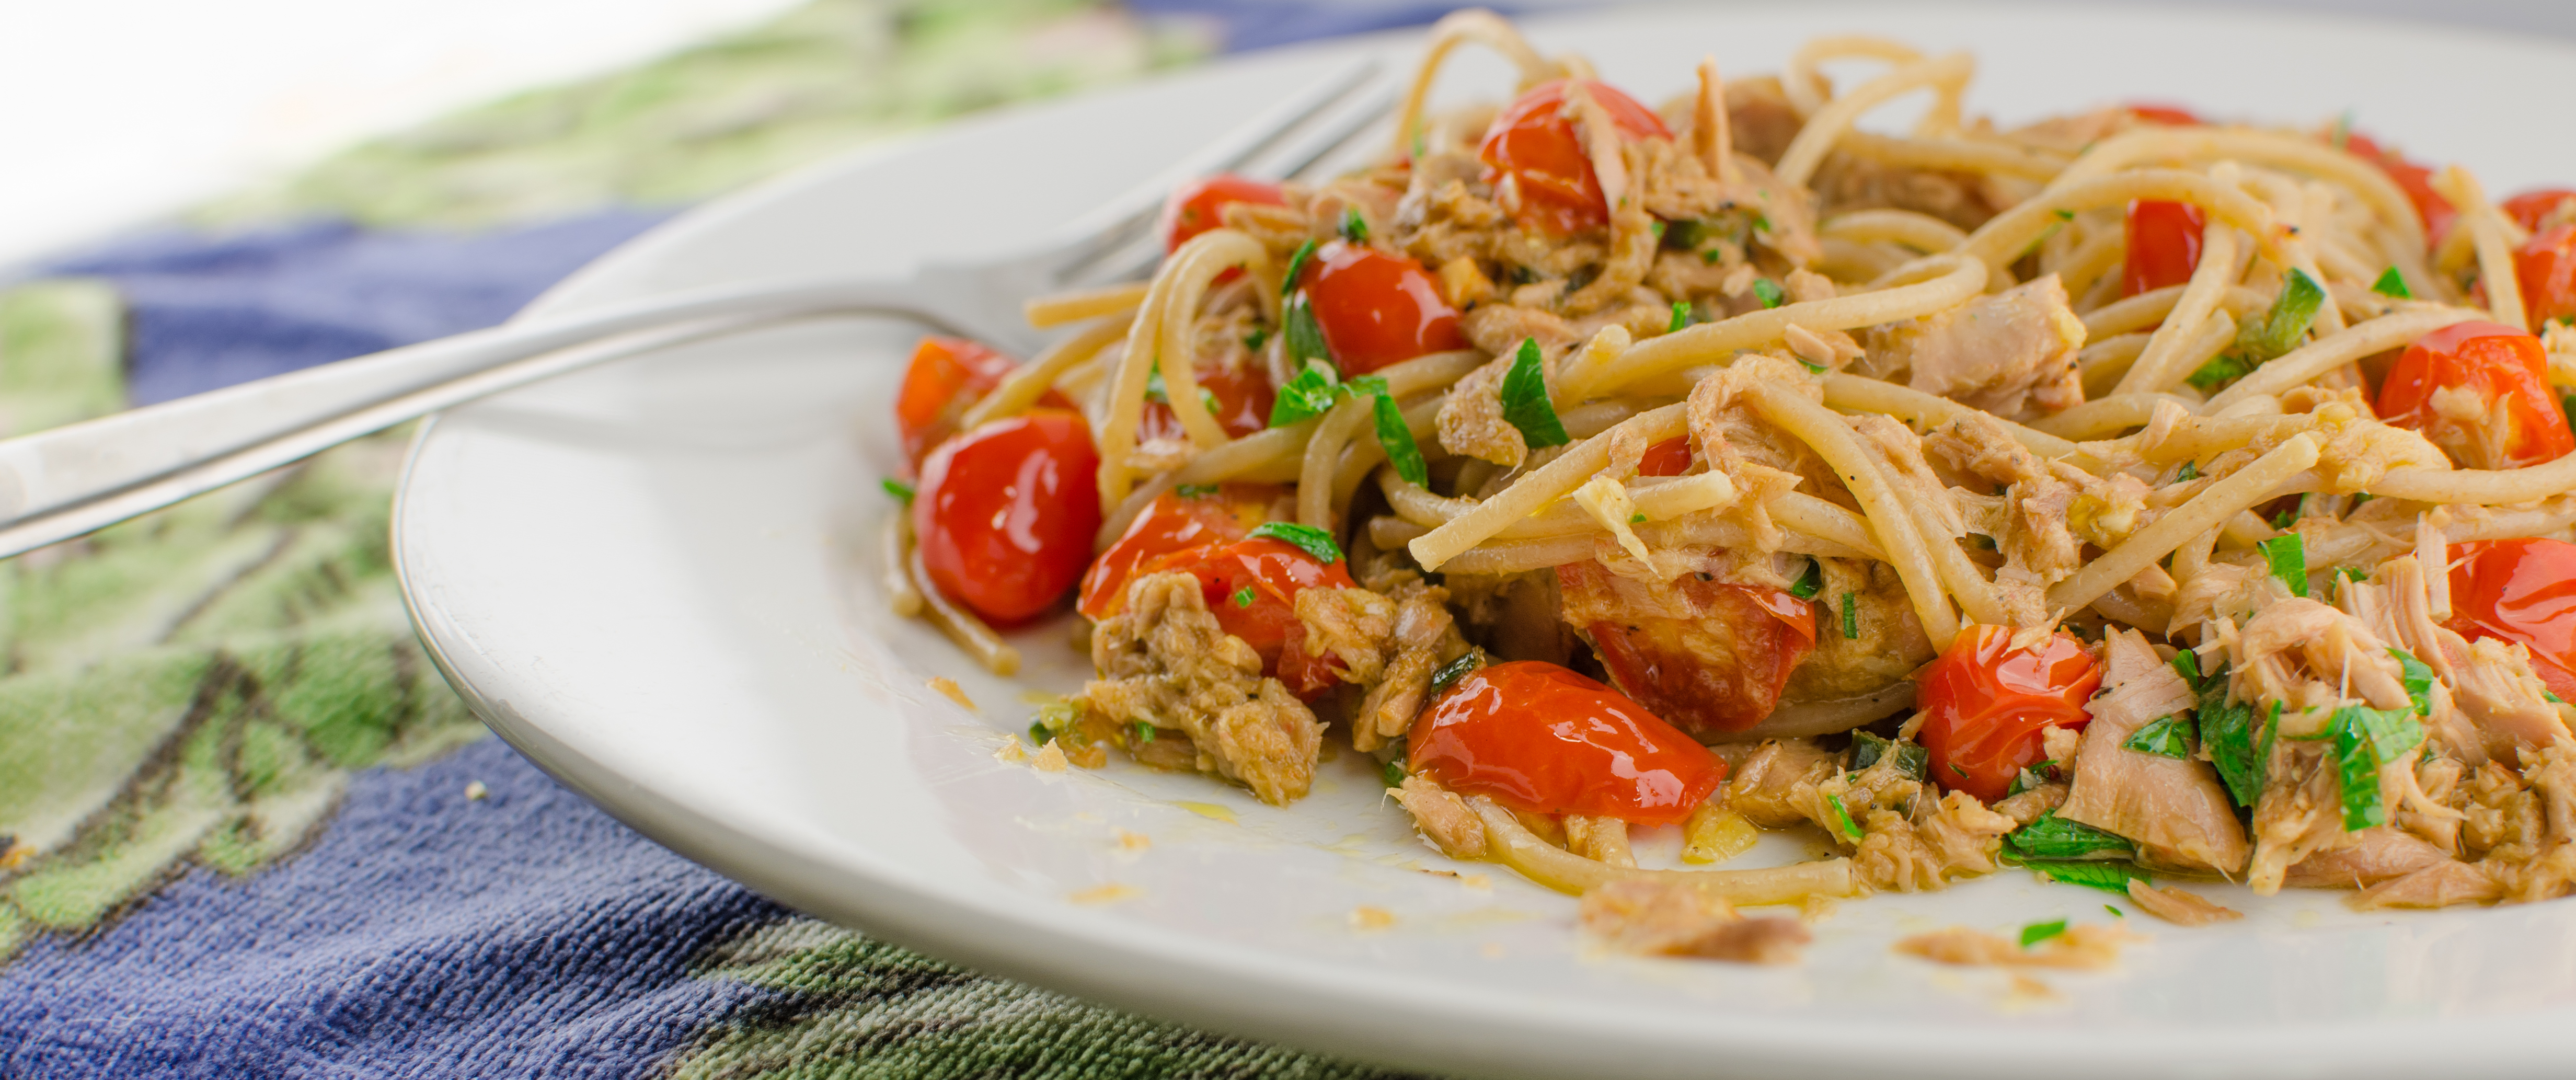 Pasta with canned tuna food e file for Canned fish recipes